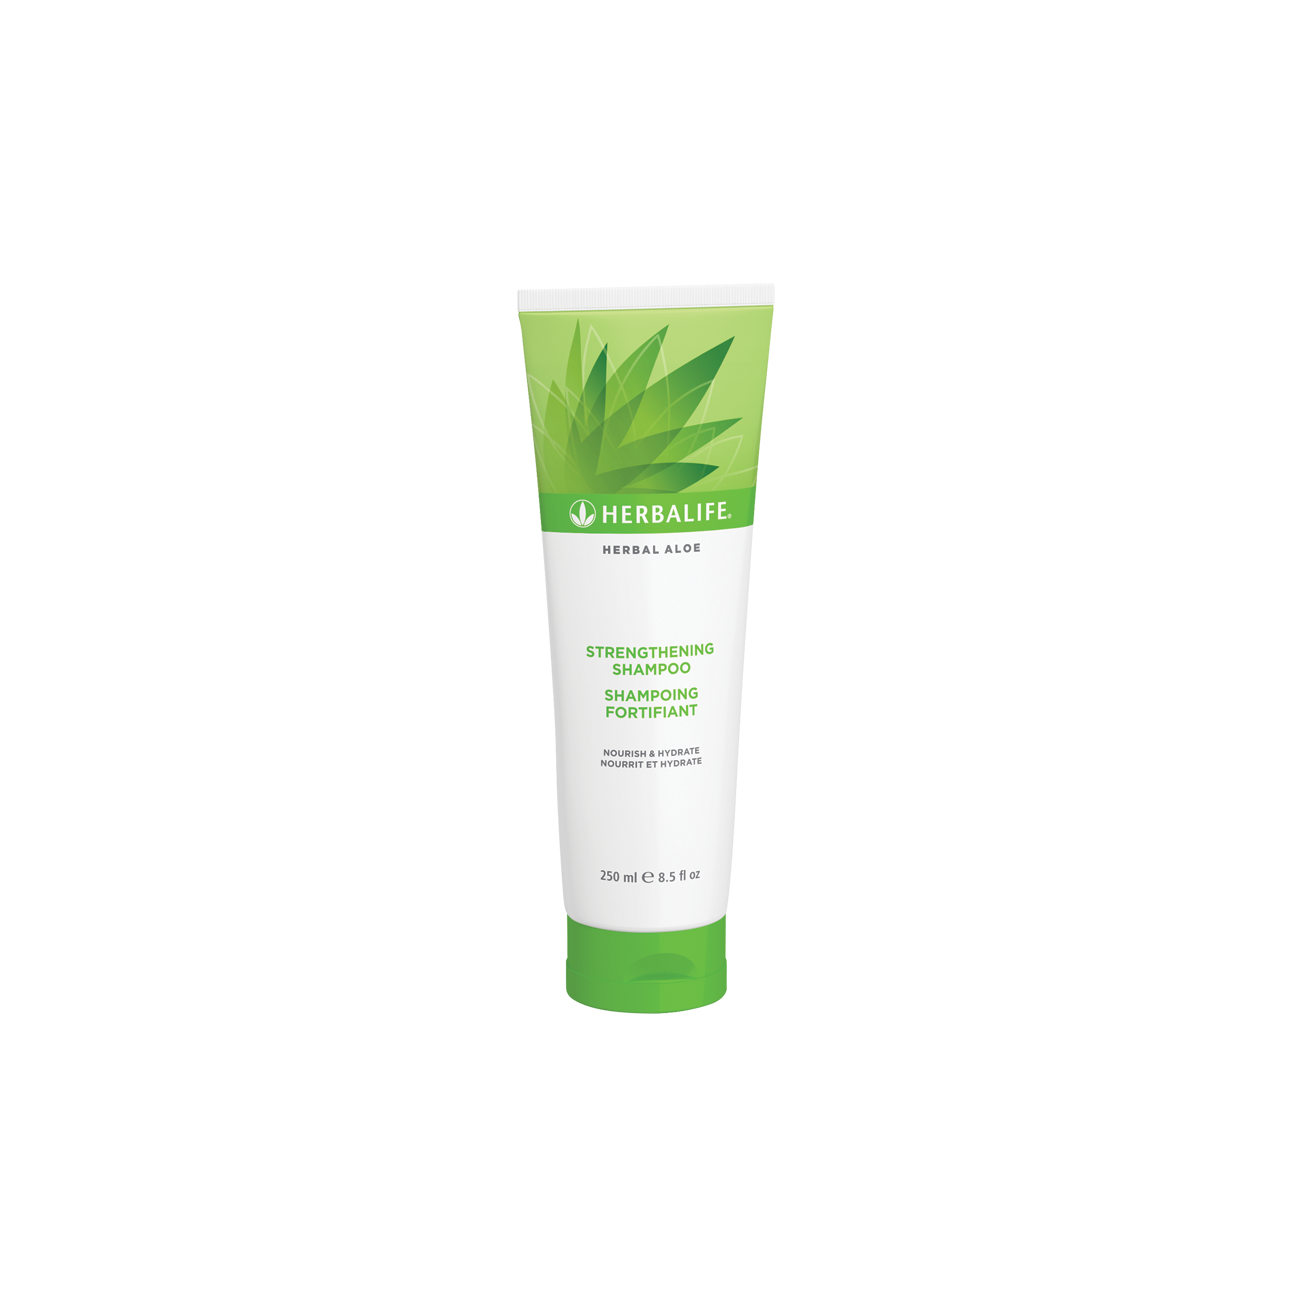 Herbal Aloe Strengthening Shampoo  product shot